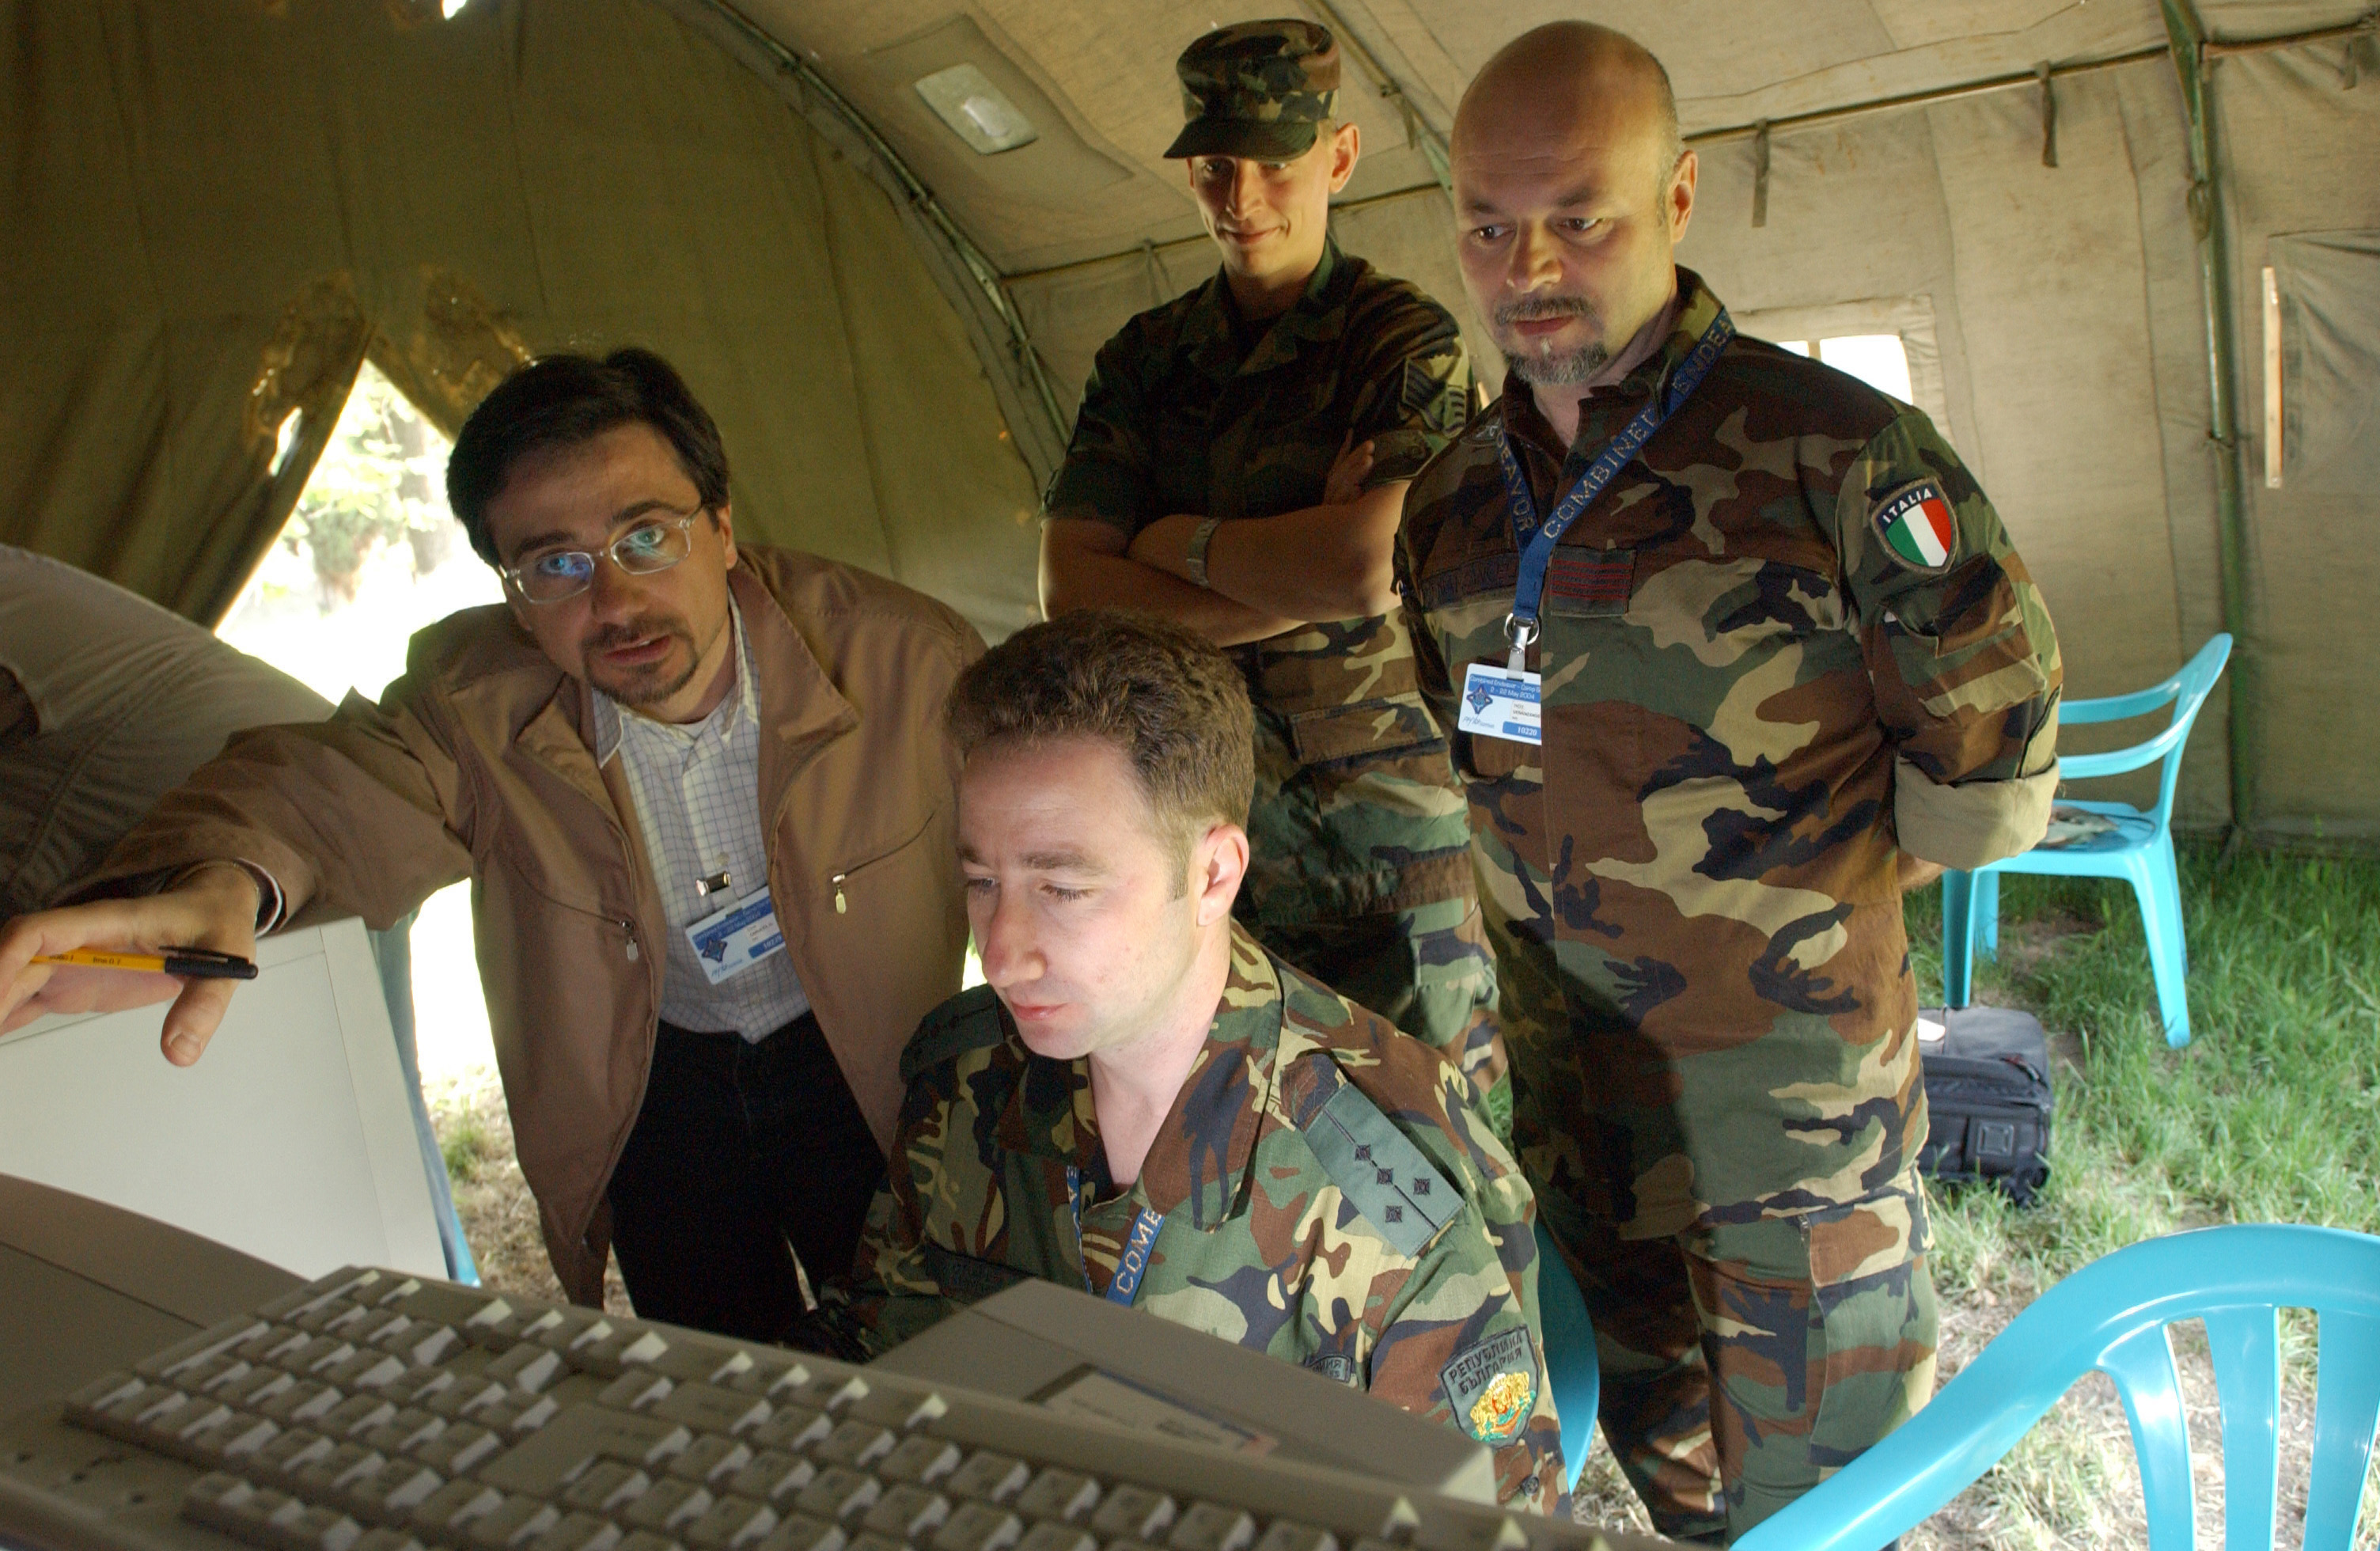 During Combined Endeavor 2004, (left to right) Italian Contractor Guseppi Carucci, US Air Force (USAF) STAFF Sergeant (SSGT) Jason Bryant, Italian Warrant Officer 3 (WO3) Sandro Venazangeli and Bulgarian Captain (CPT) Stanislav Stoychev work on encrypted certificates and signature blocks for secure e-mail at Combined Endeavor, Camp Sarafovo, Bulgaria (BGR)